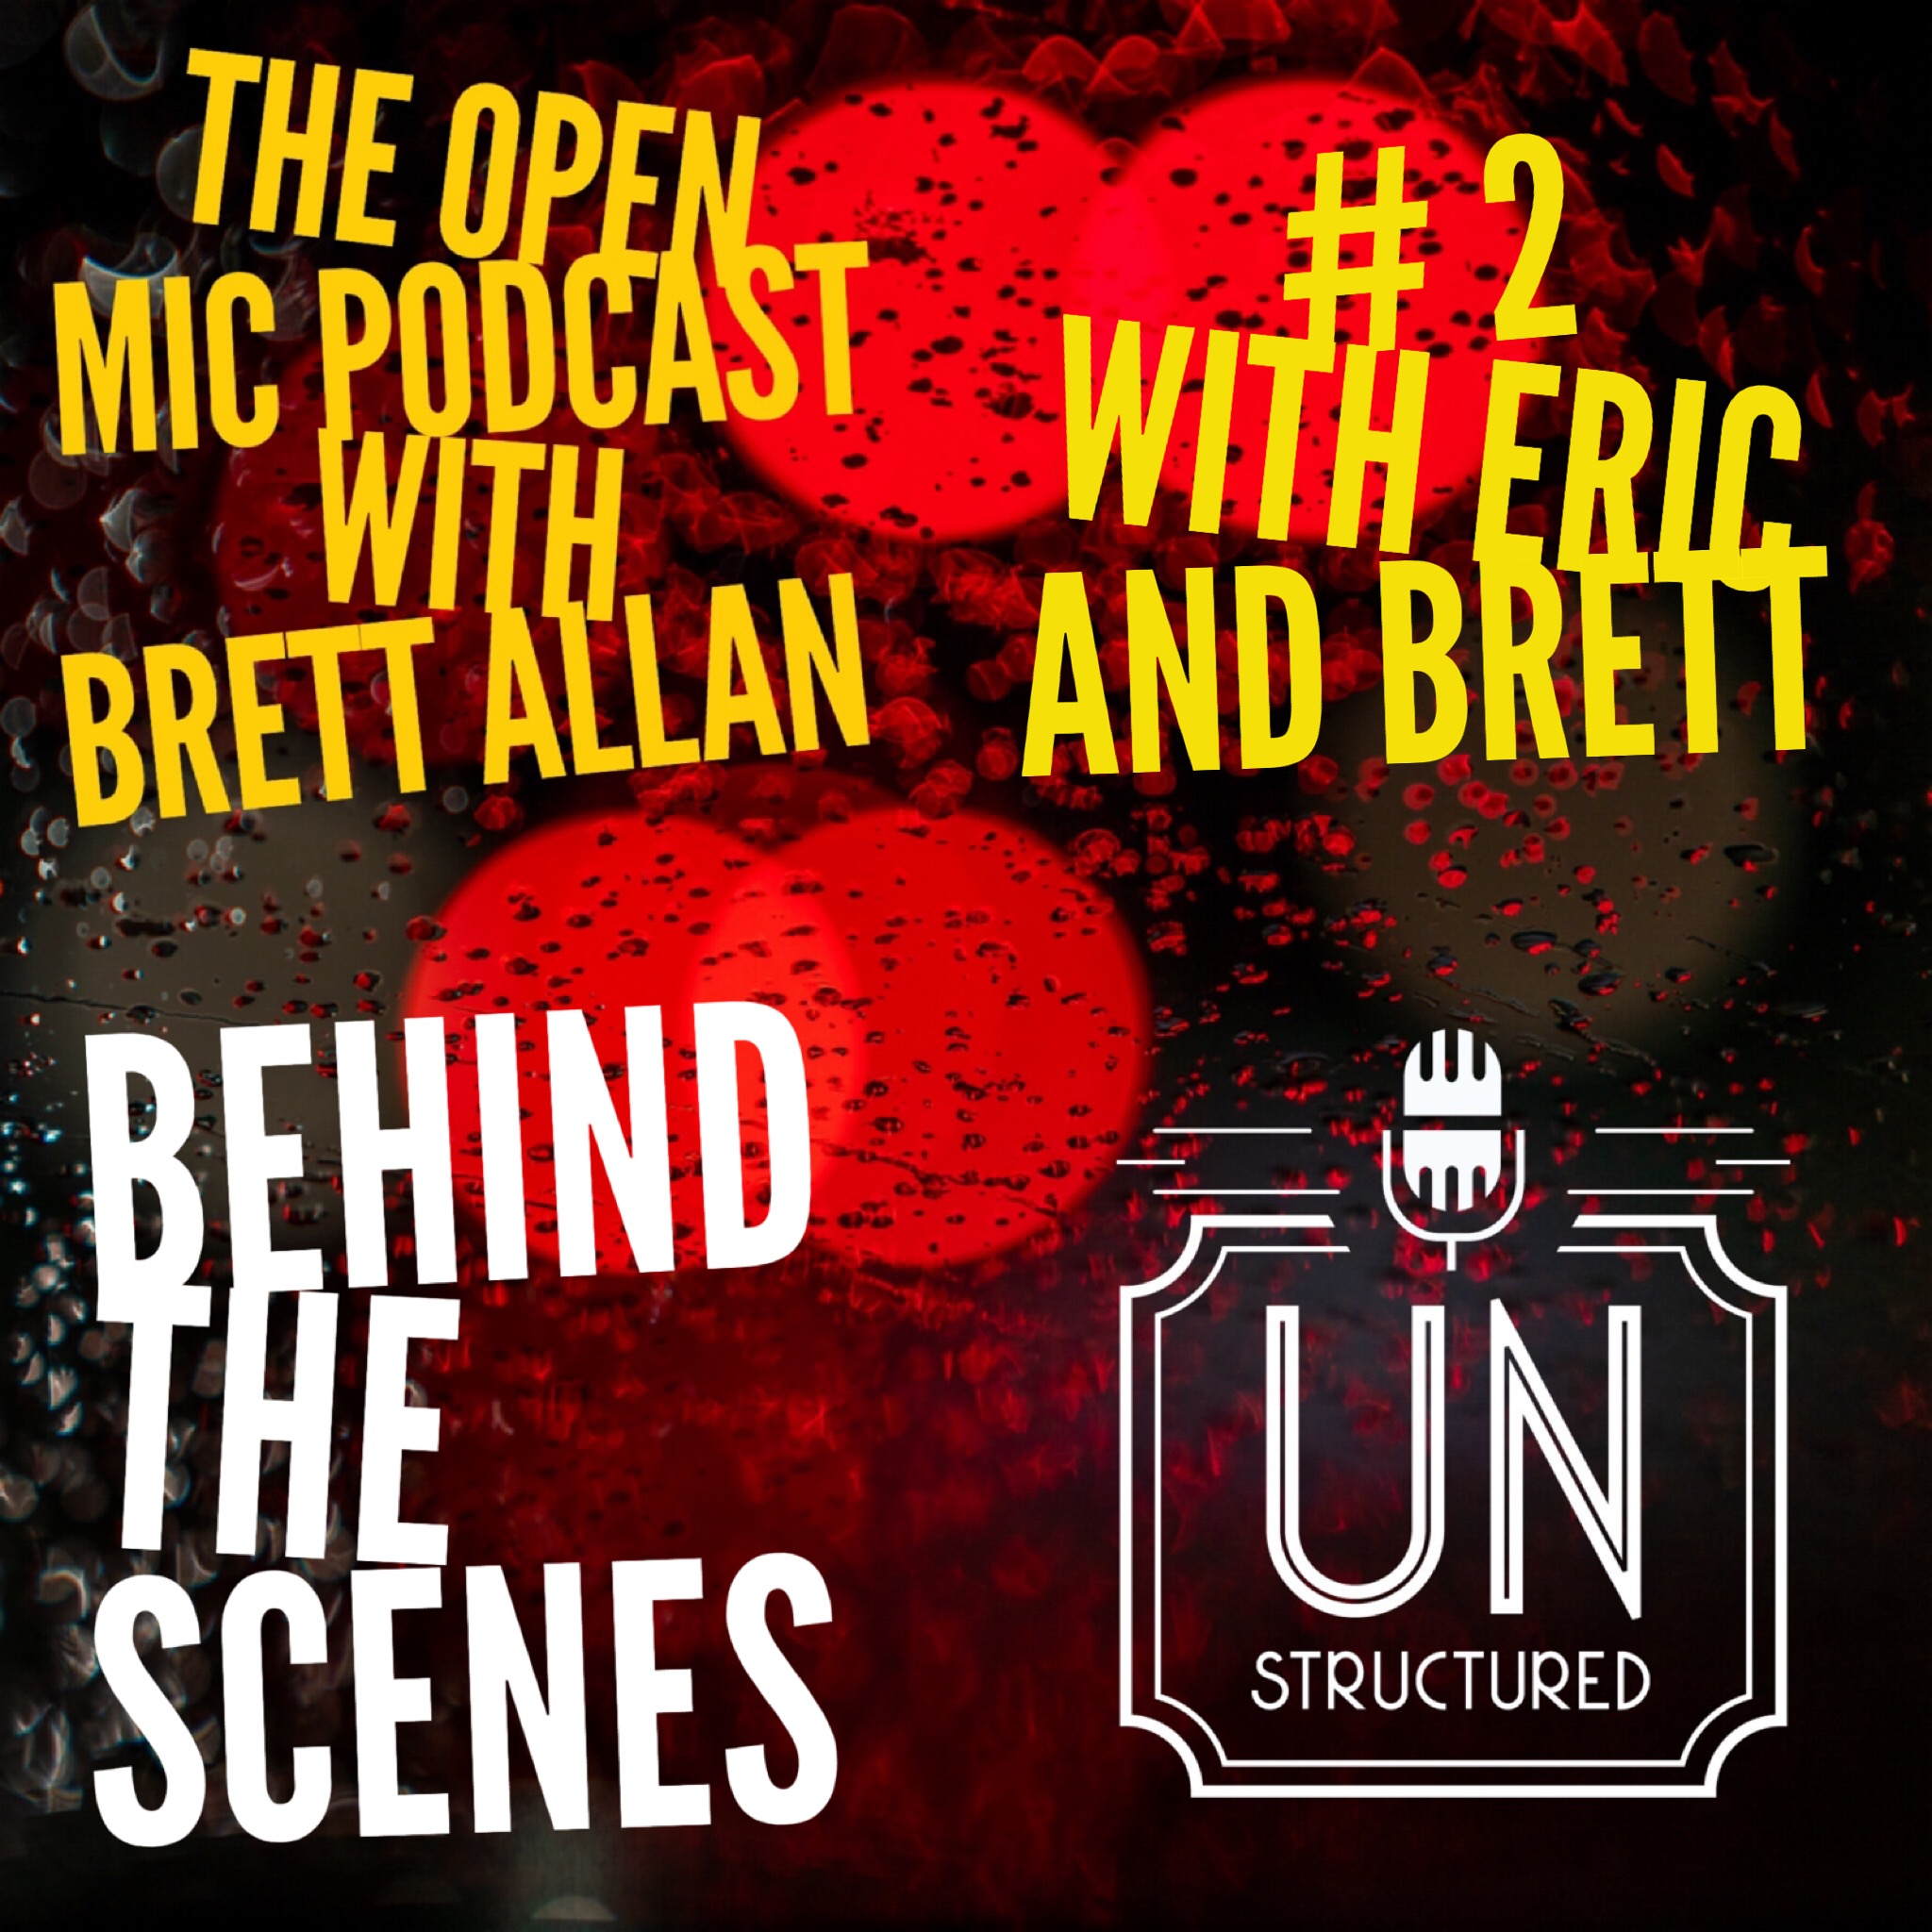 116 - Behind the Scenes UnstructuredPod Unstructured interviews - Dynamic Informal Conversations with unique wide-ranging and well-researched interviews hosted by Eric Hunley